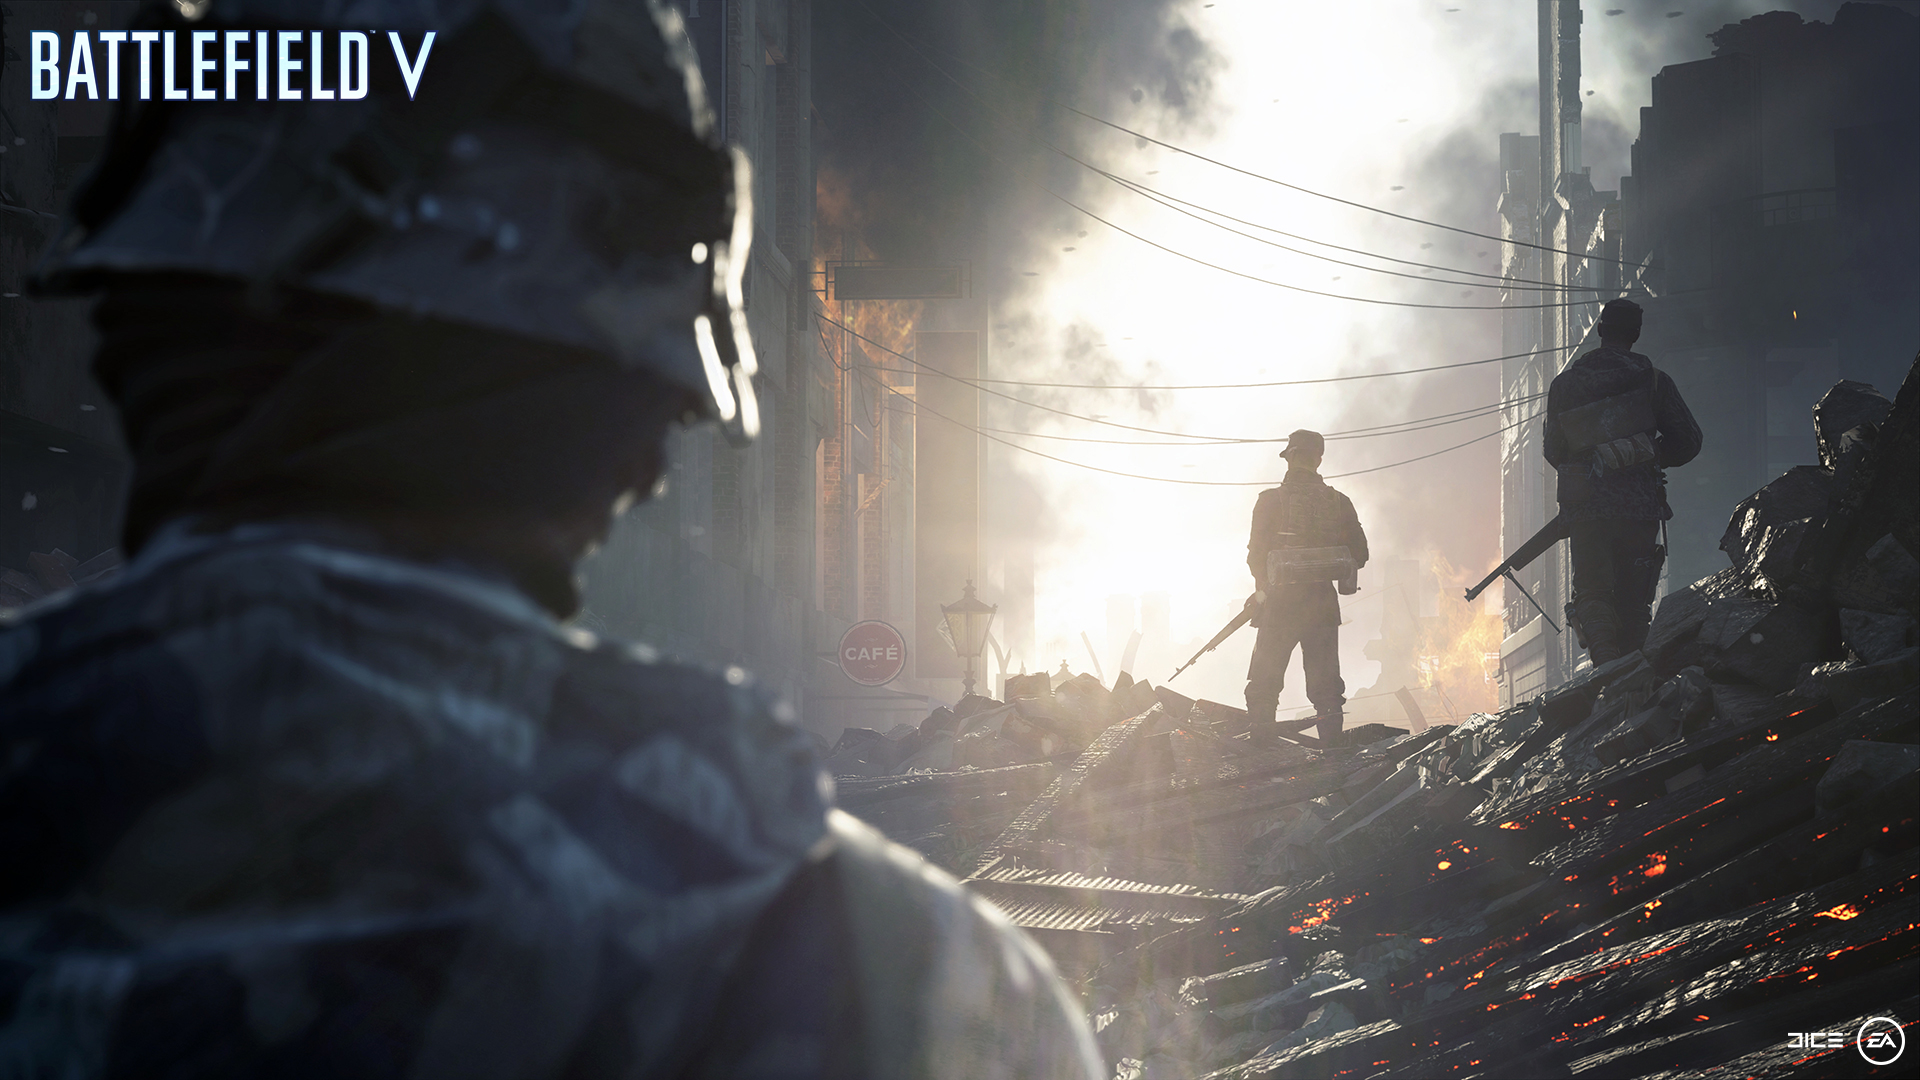 Battlefield V Proximity Chat May Come In The Future Per